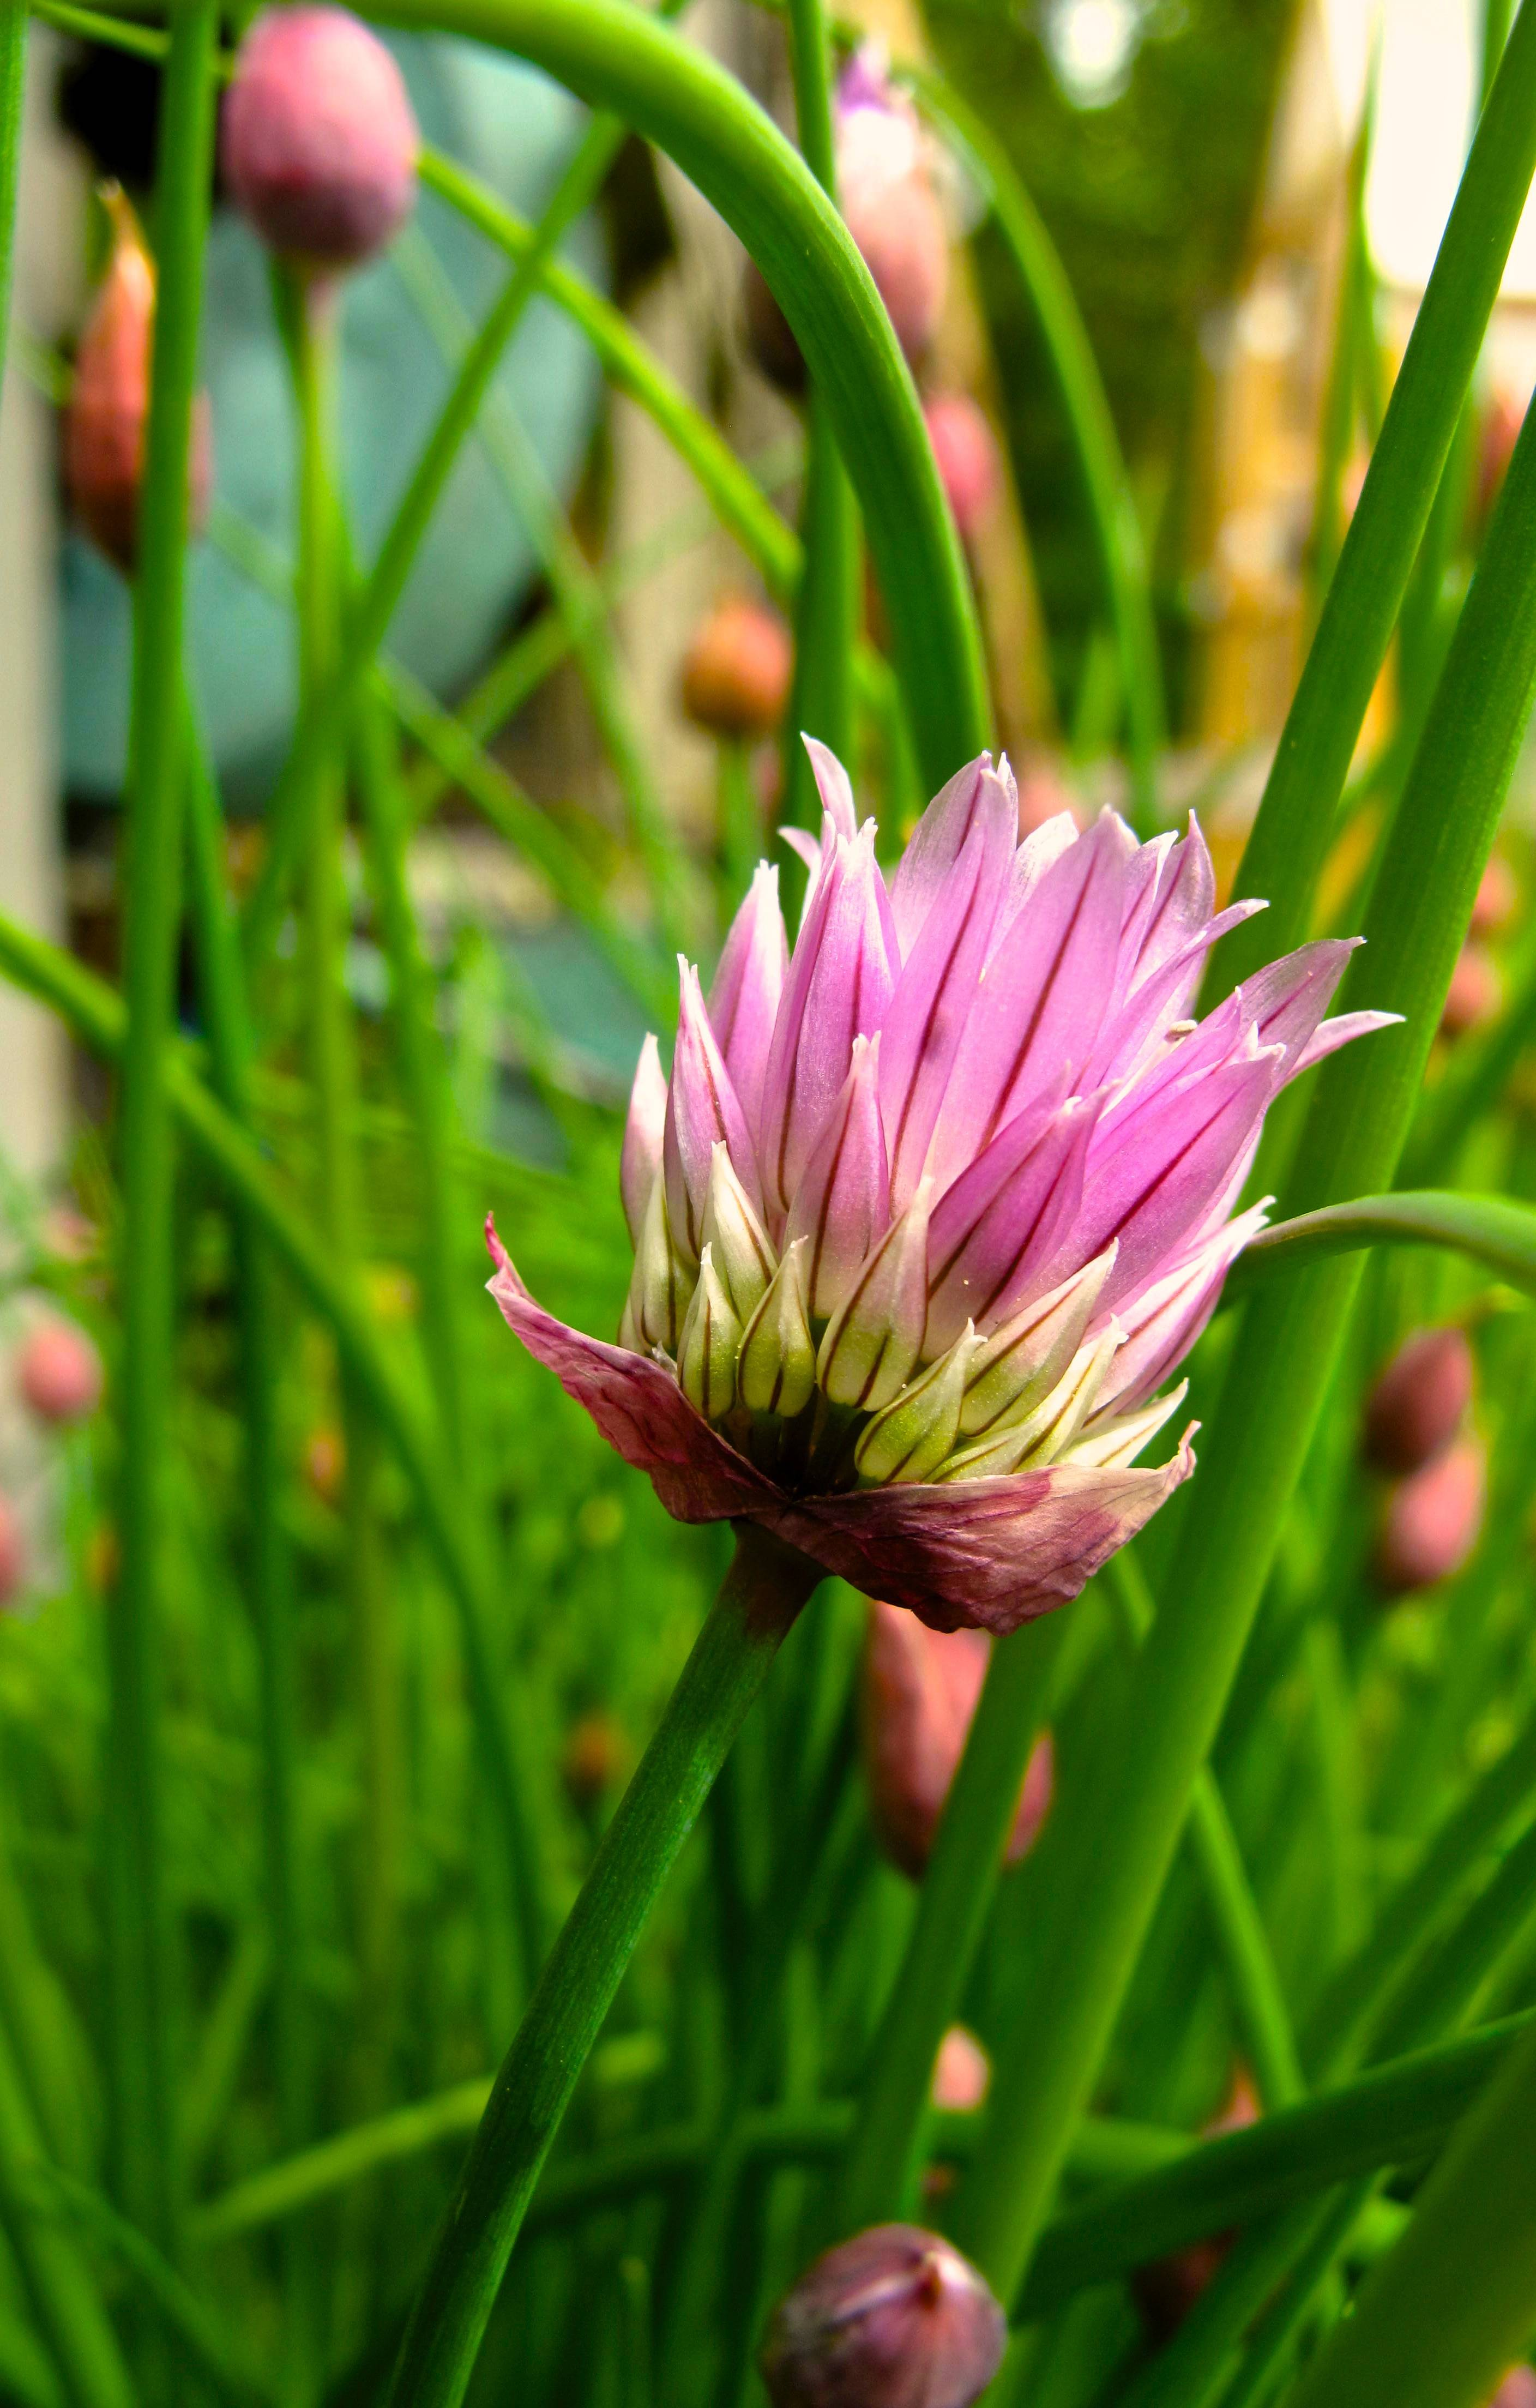 Chives are lovely to look at, but their flavor declines and changes once they begin to flower. Extend the harvest by pinching back the plants to keep them from blooming.